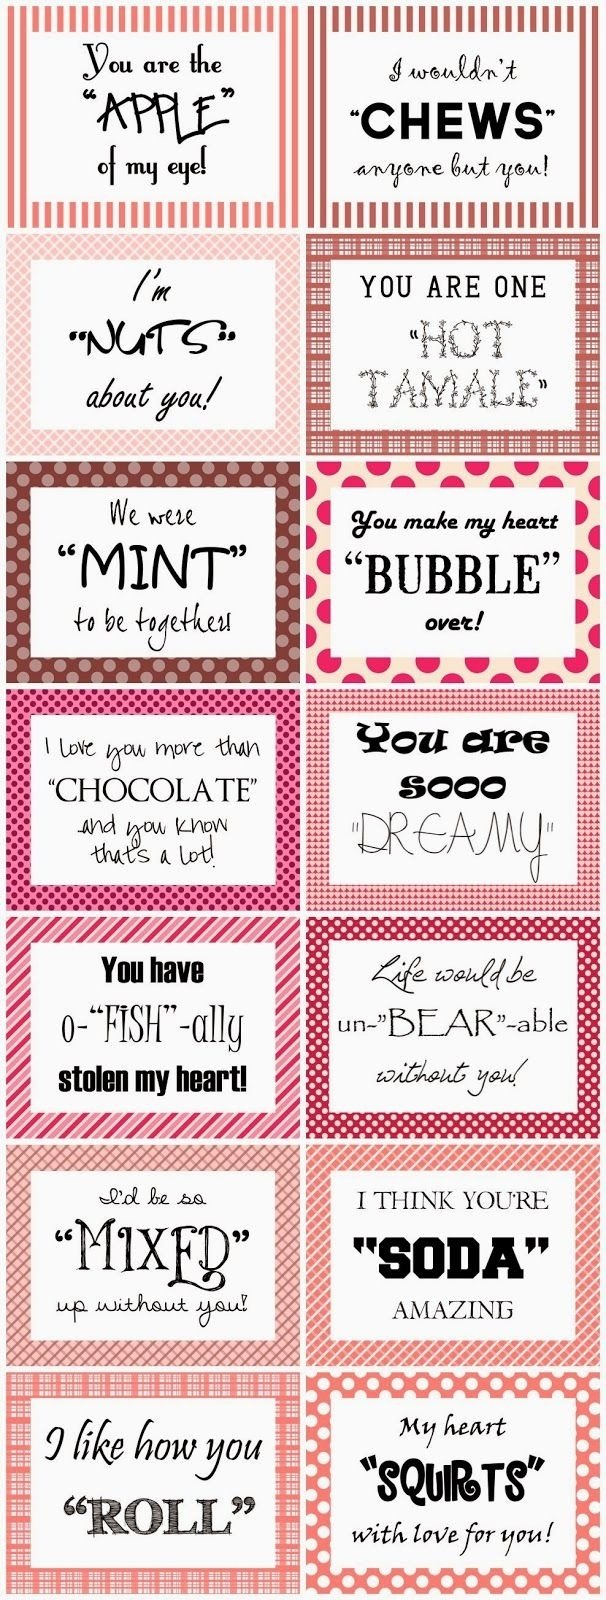 10 Beautiful 14 Days Of Valentines Ideas For Him